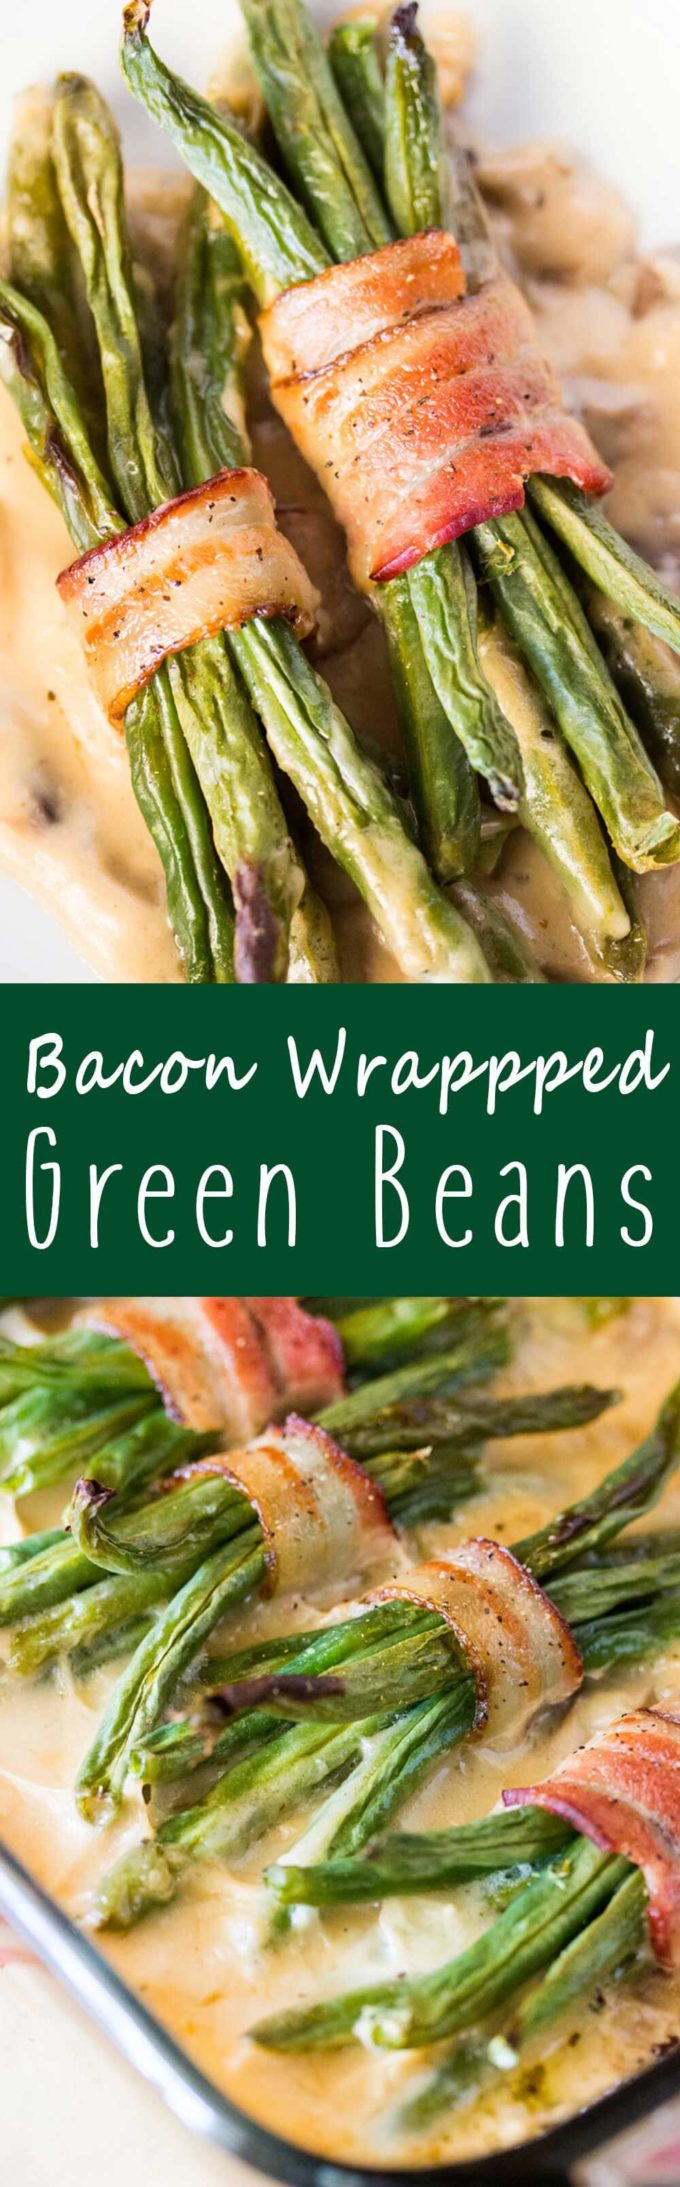 Bacon Wrapped Green Beans: Features tender green beans that are wrapped in bacon and baked atop a creamy delicious mushroom sauce. Umm good!